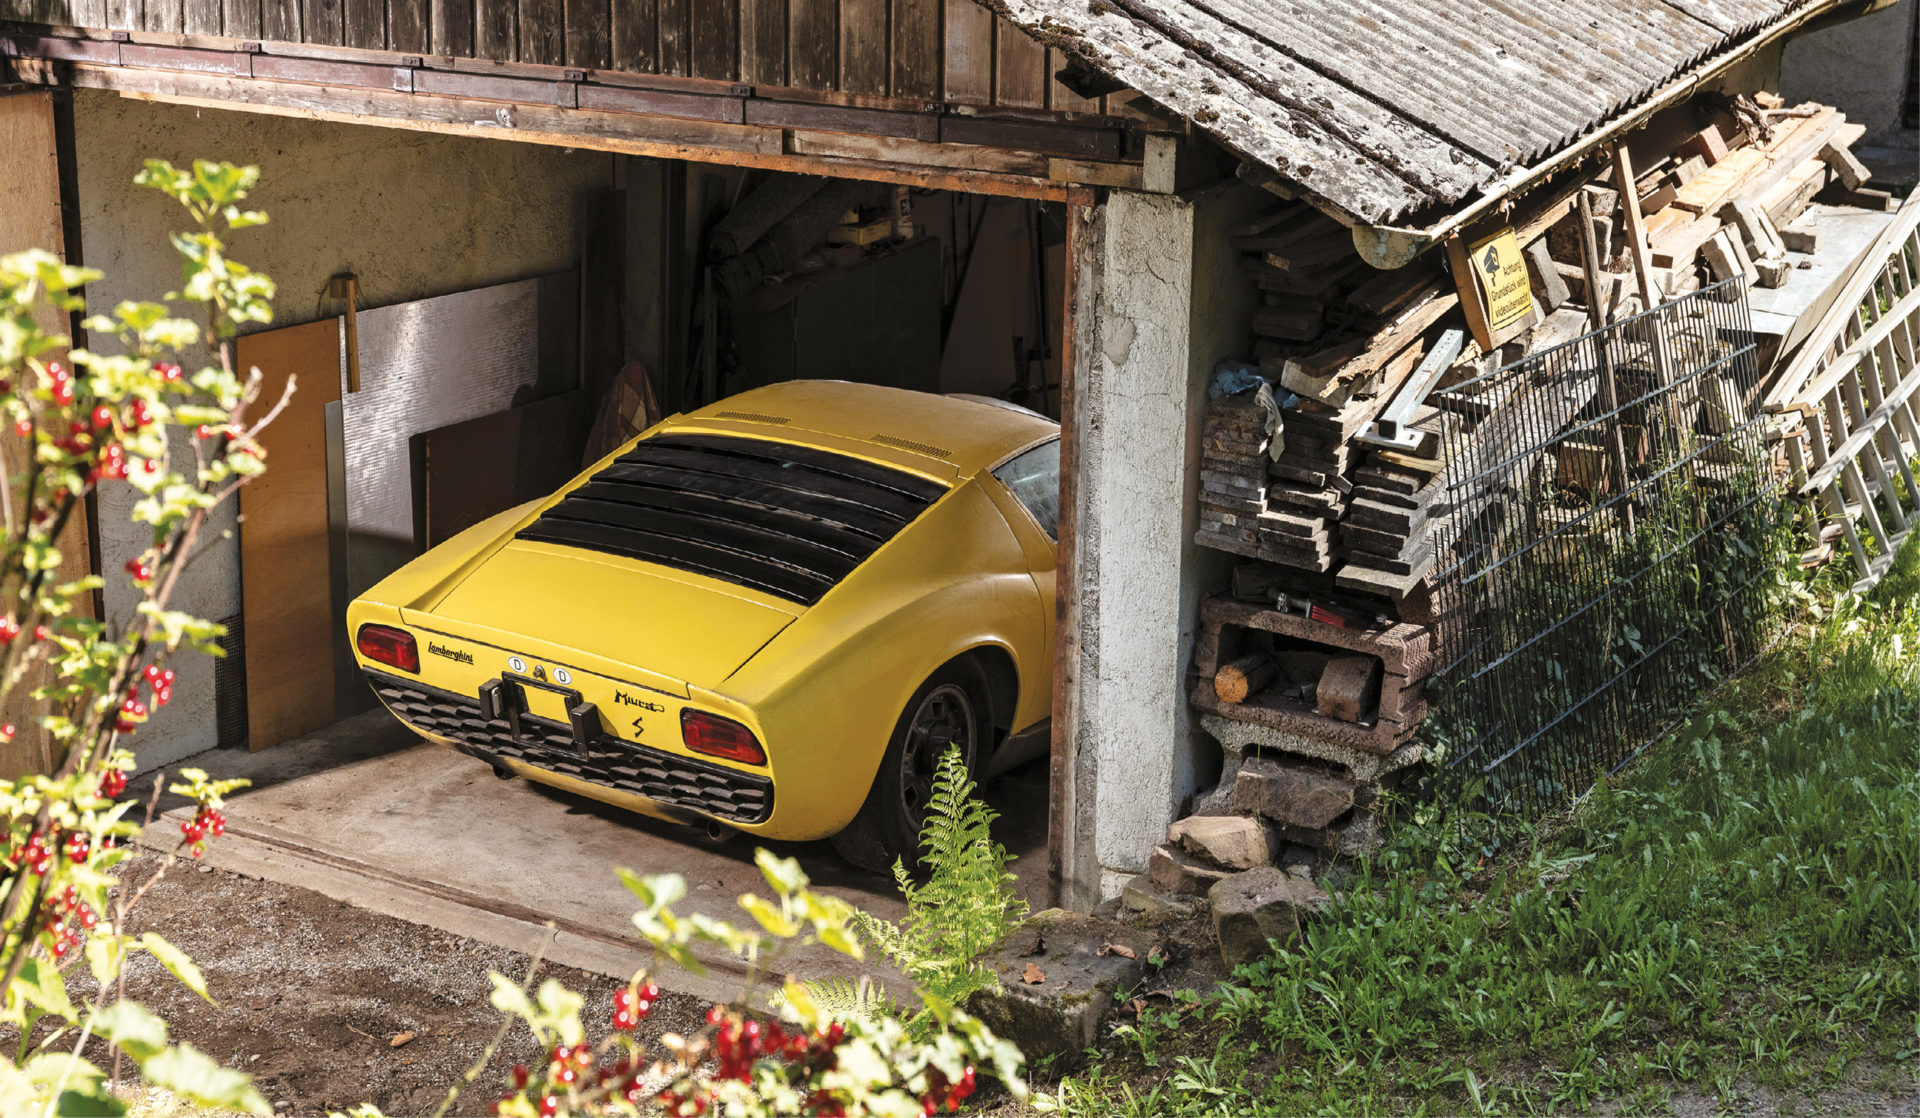 This Lamborghini Miura proved the perfect barn find project, but sold for a packet